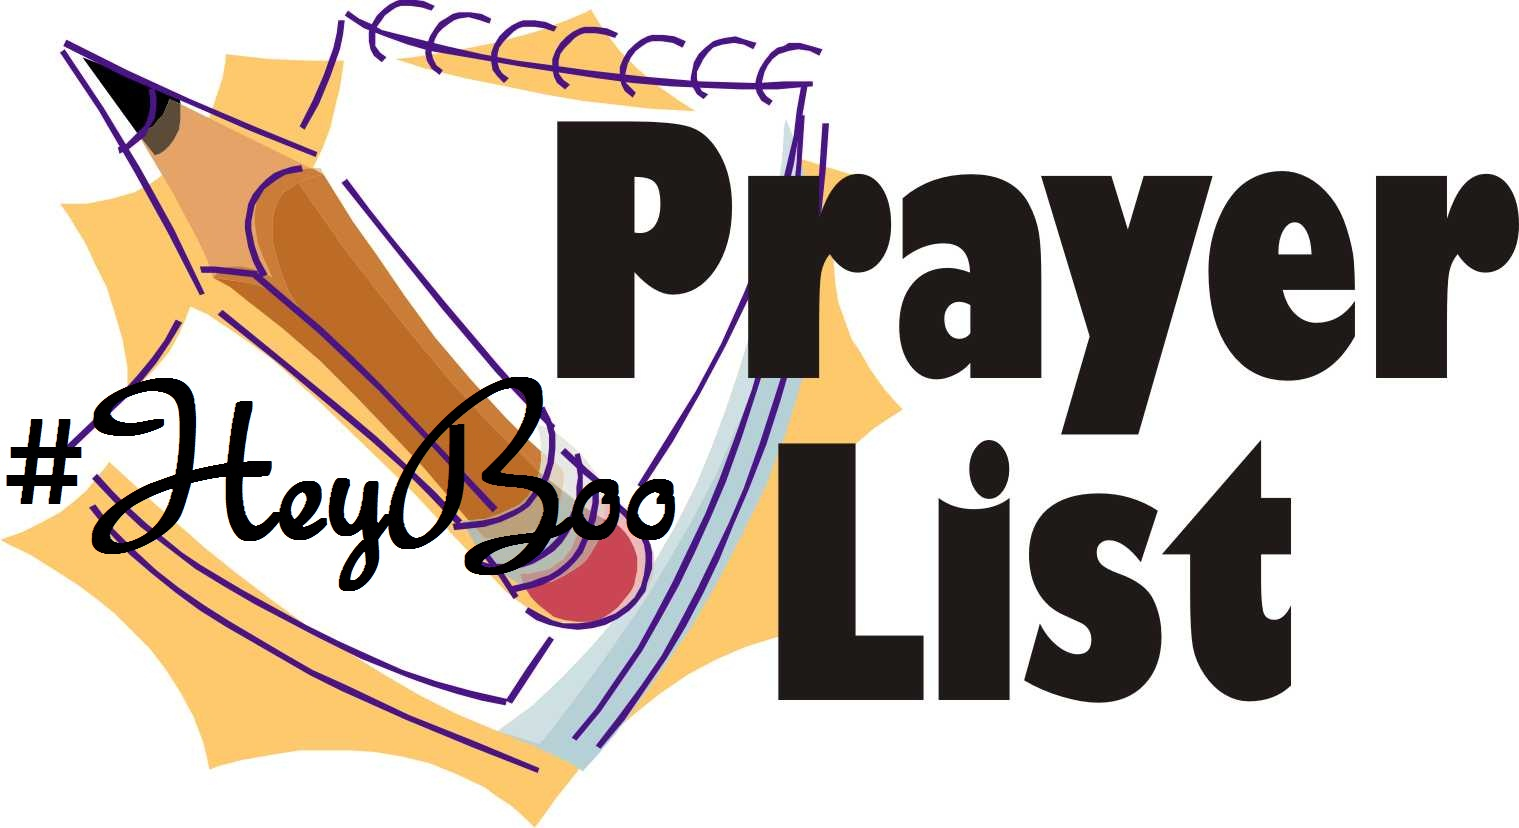 1519x828 Heyboo Prayer List Kia Speaks